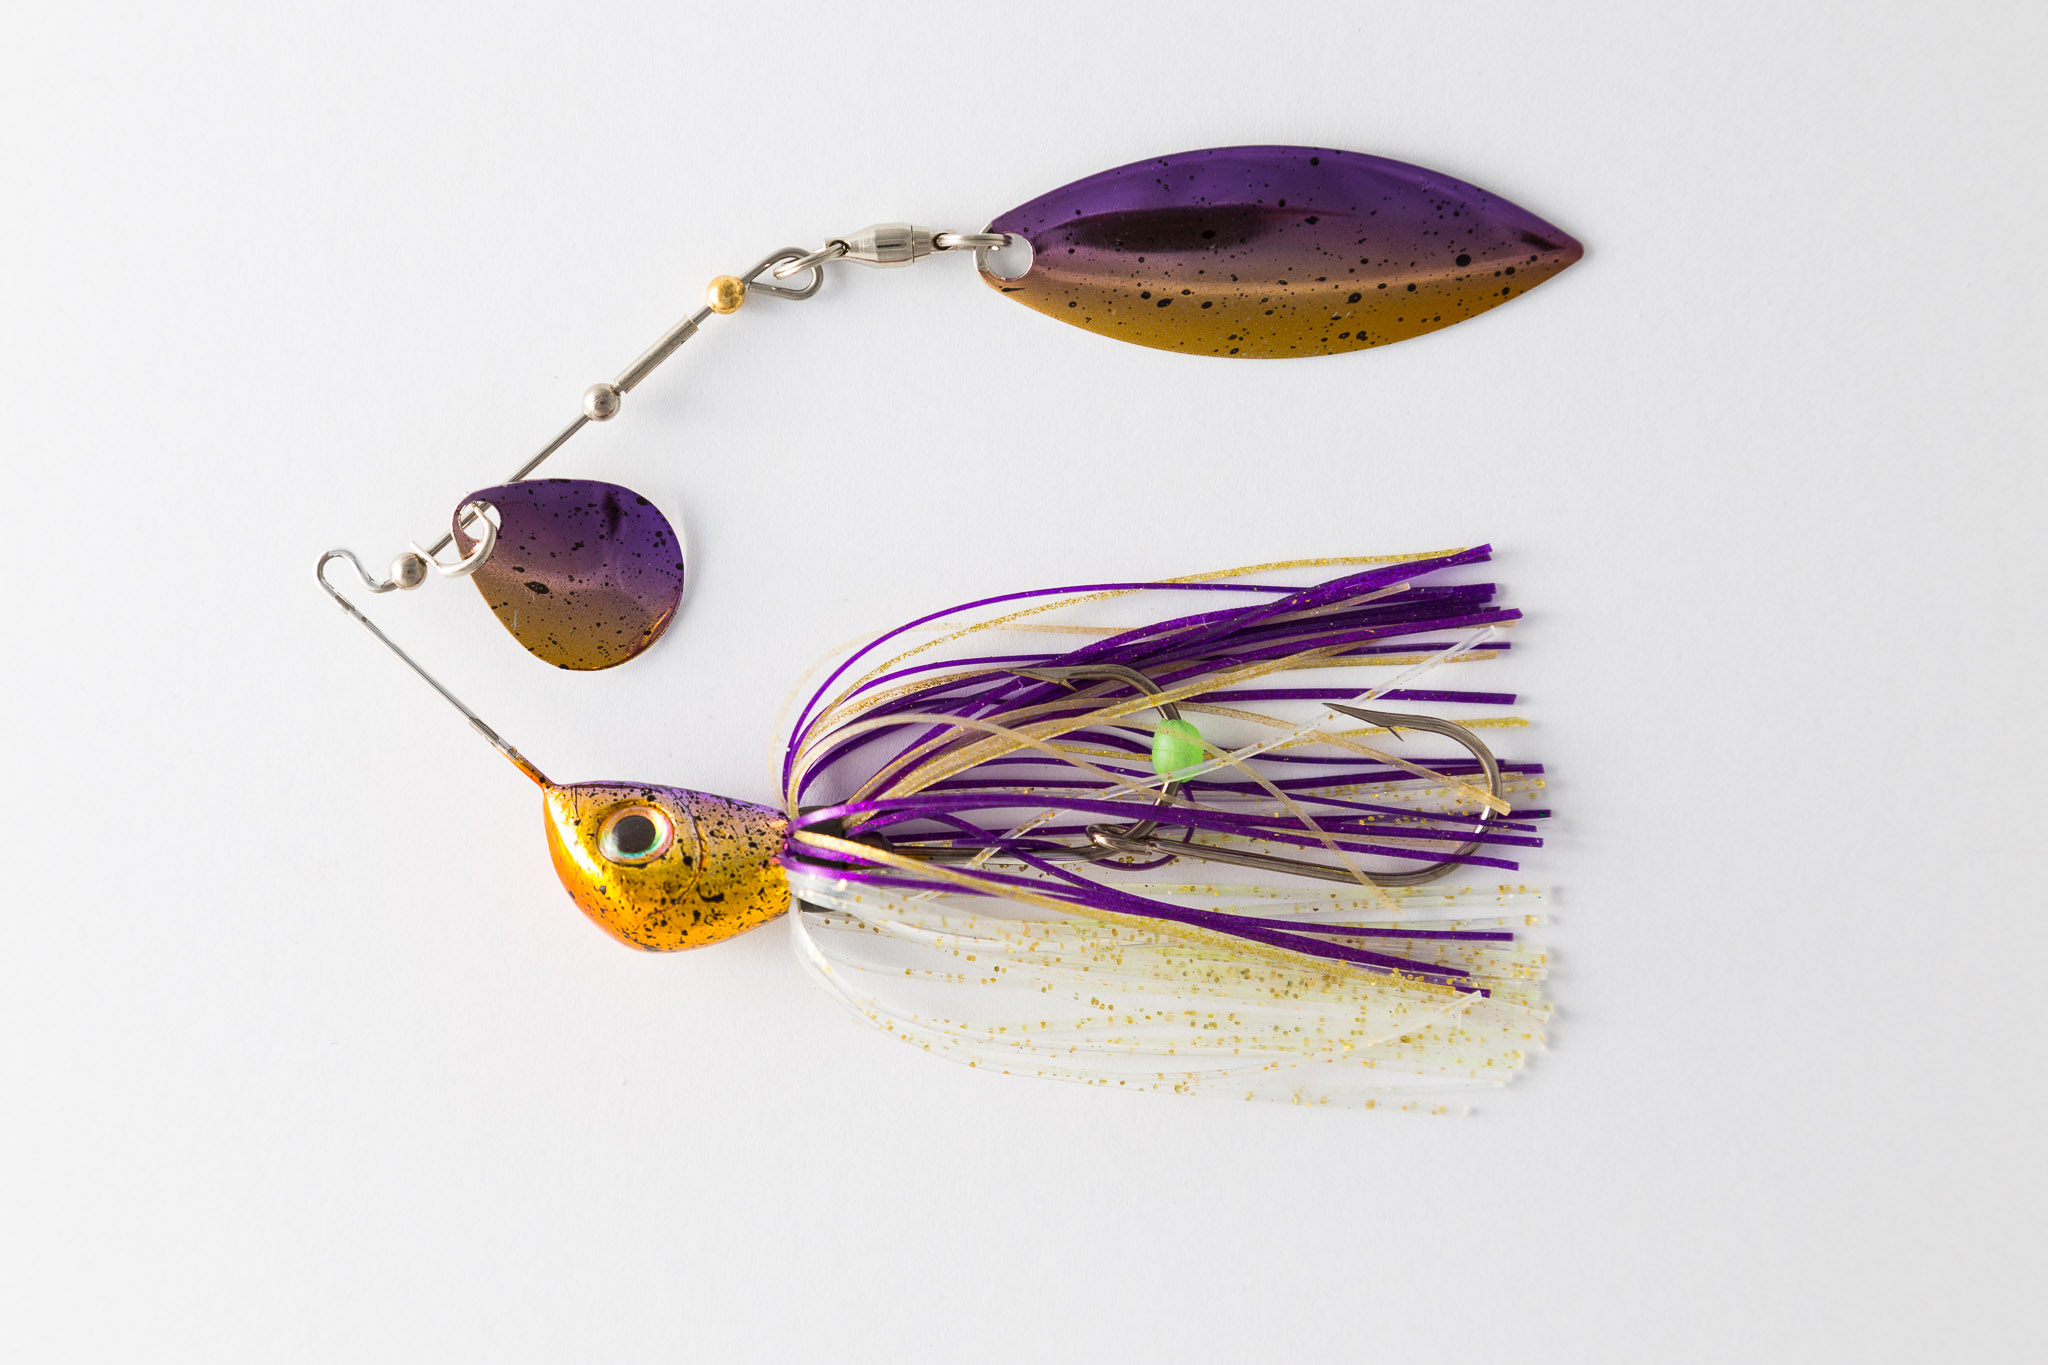 SMAK Wild Spinnerbaits